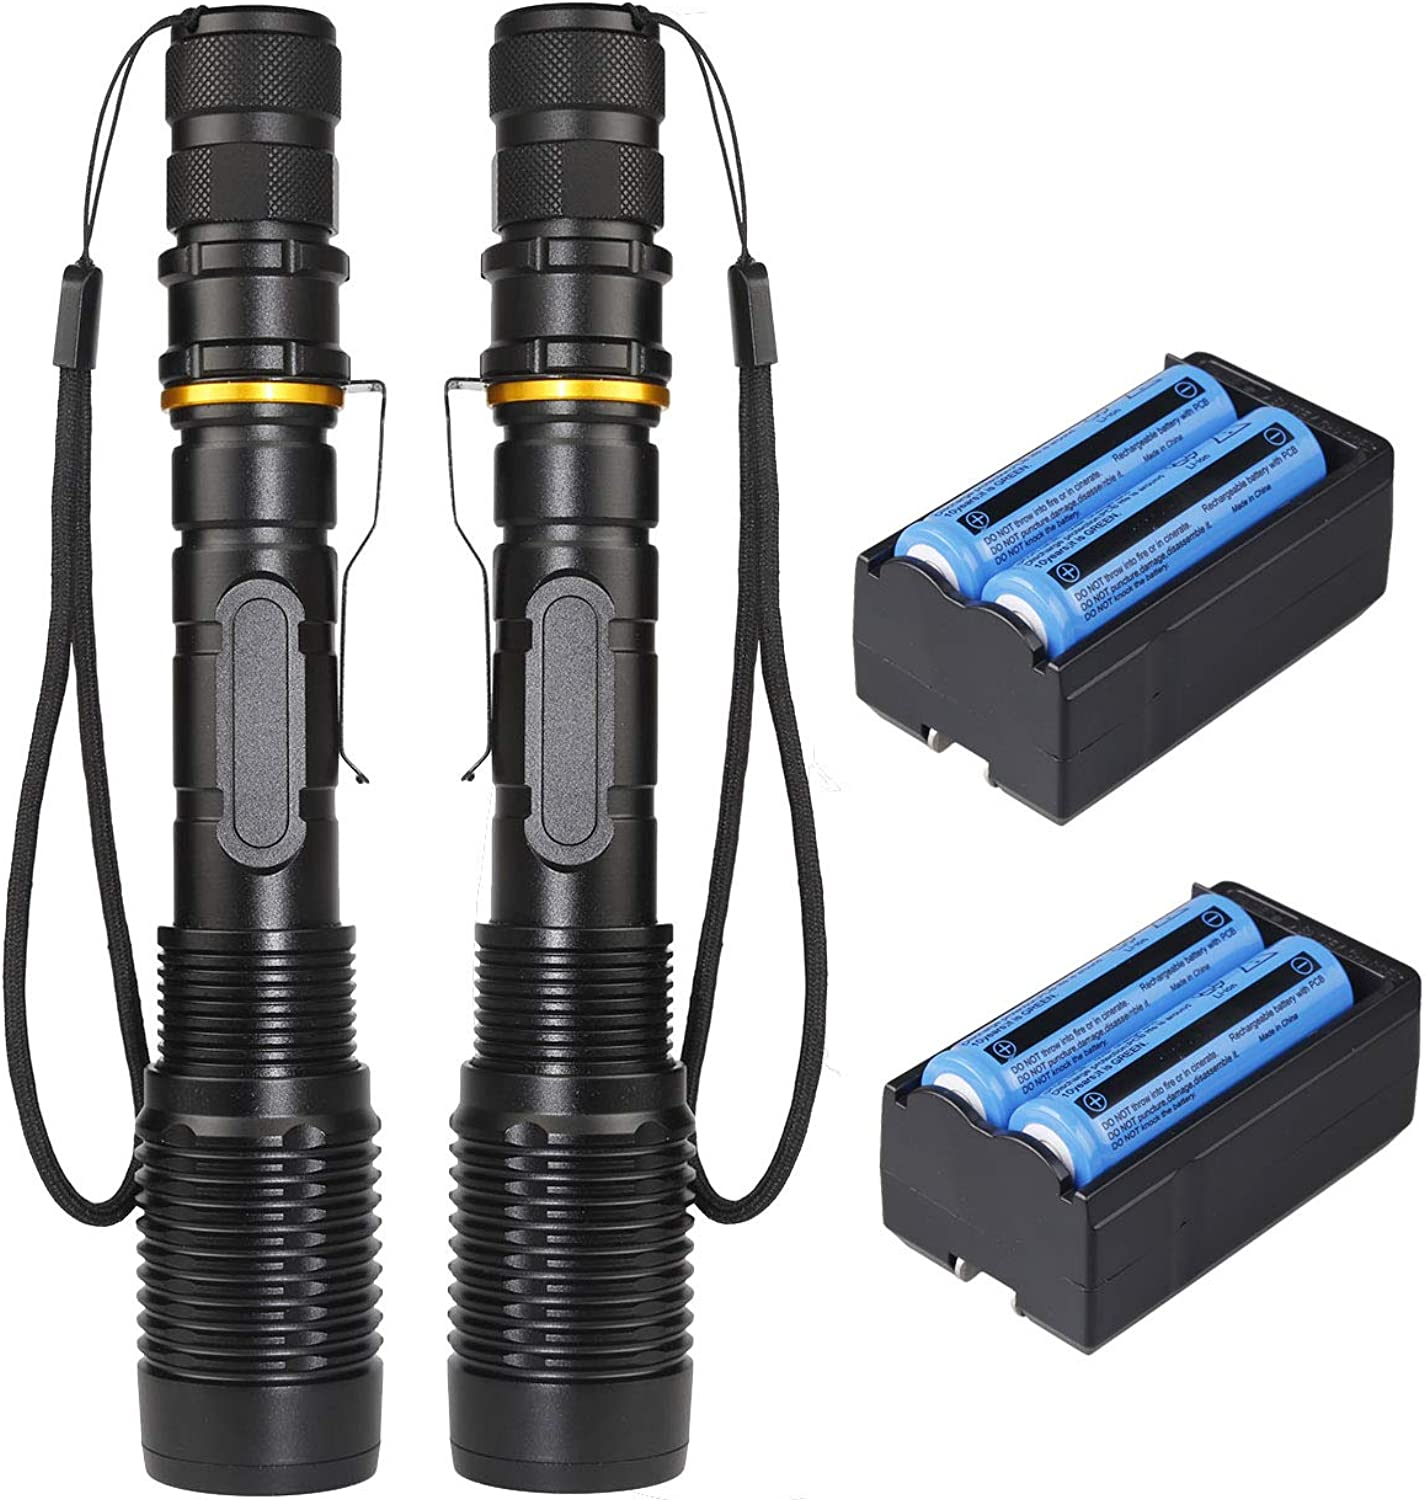 2 Pack of T6 Tactical LED Flashlights 5 Modes Zoom Focus Waterproof LED Flashlight Torch with Batteries and Chargers